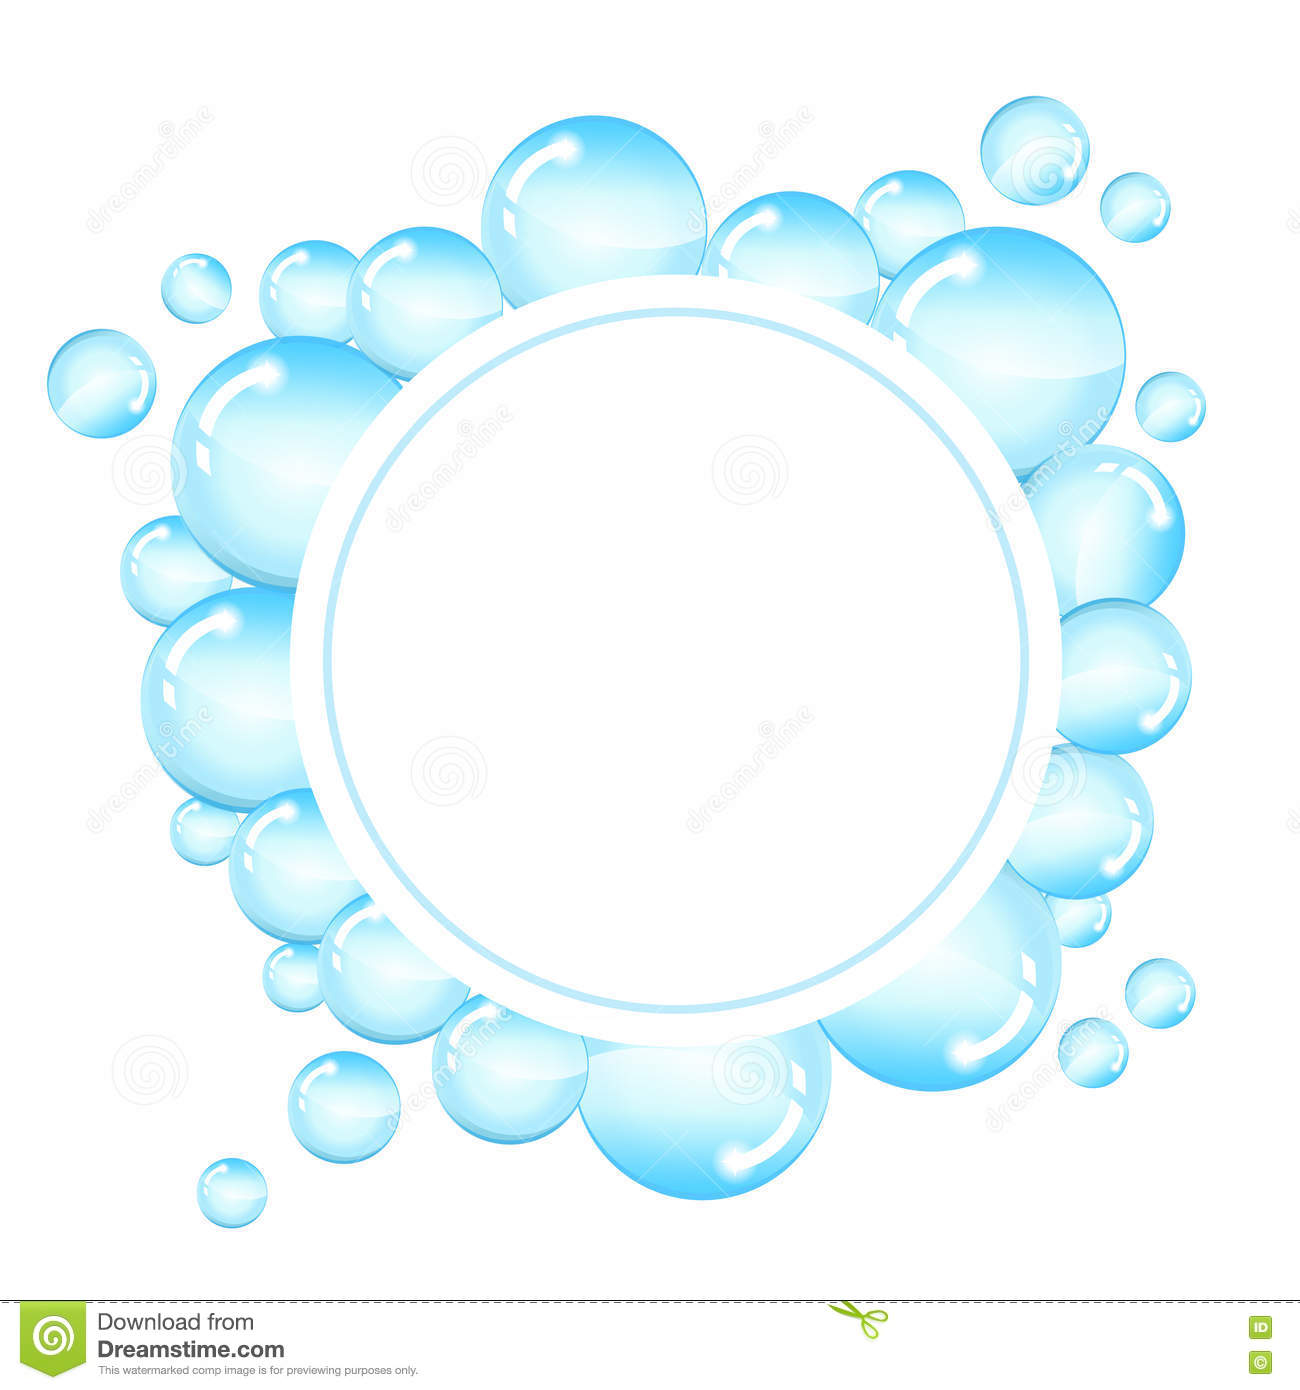 Suds Cartoons Illustrations Amp Vector Stock Images 726